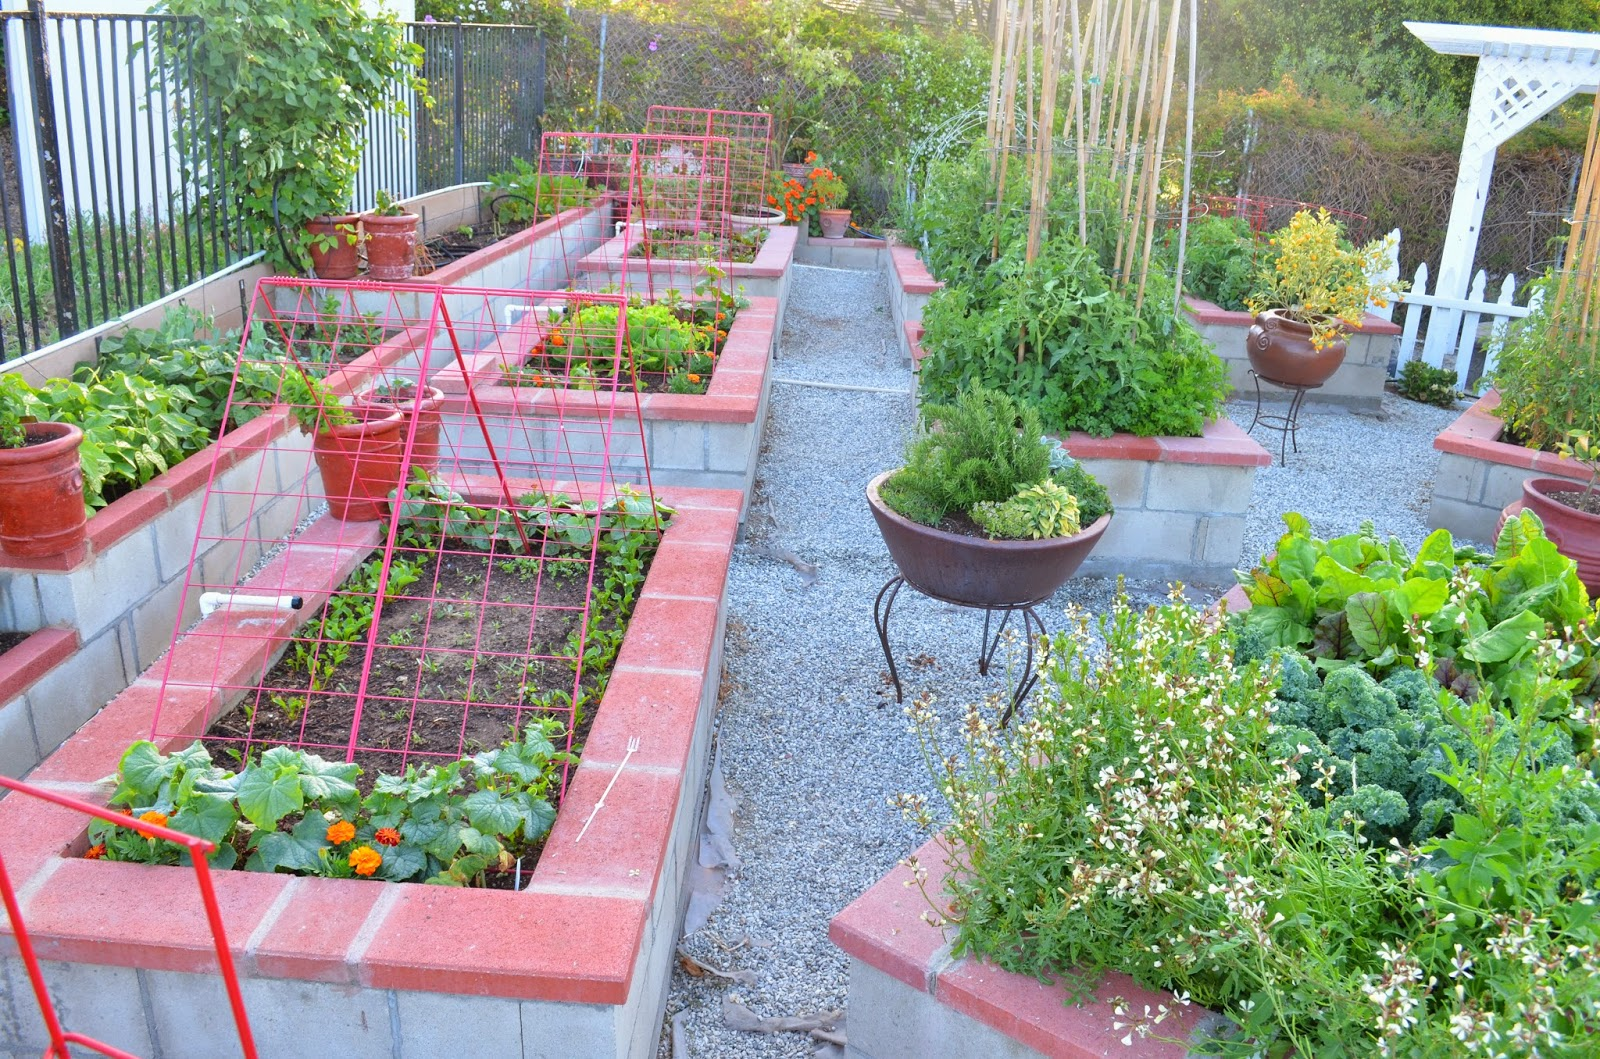 Kitchen Gardens In India Entertaining From An Ethnic Indian Kitchen Garden Tour 2 The